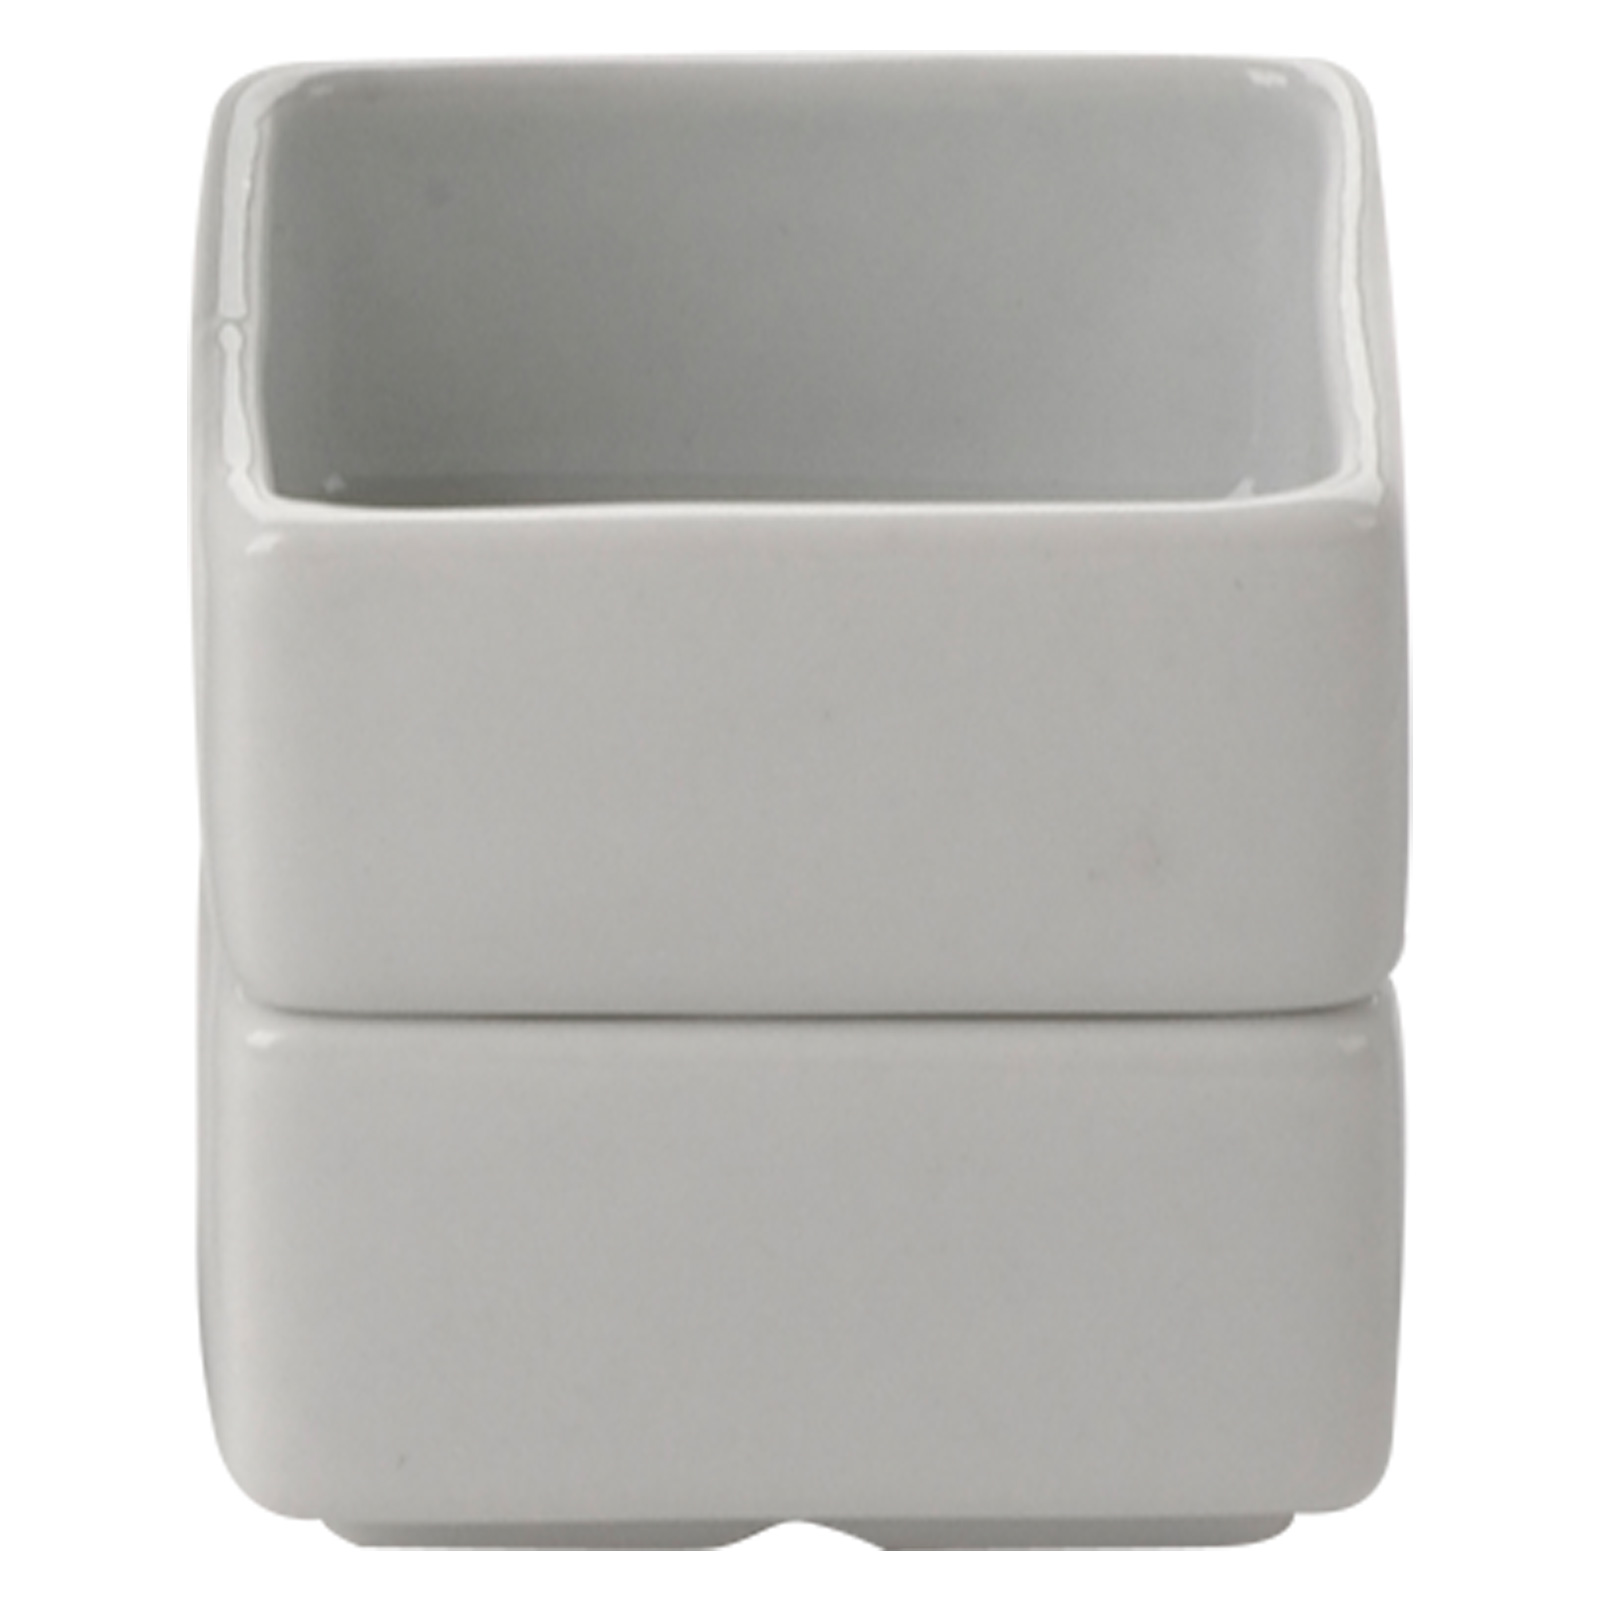 Set of 6 Square Pots Medium by BIA